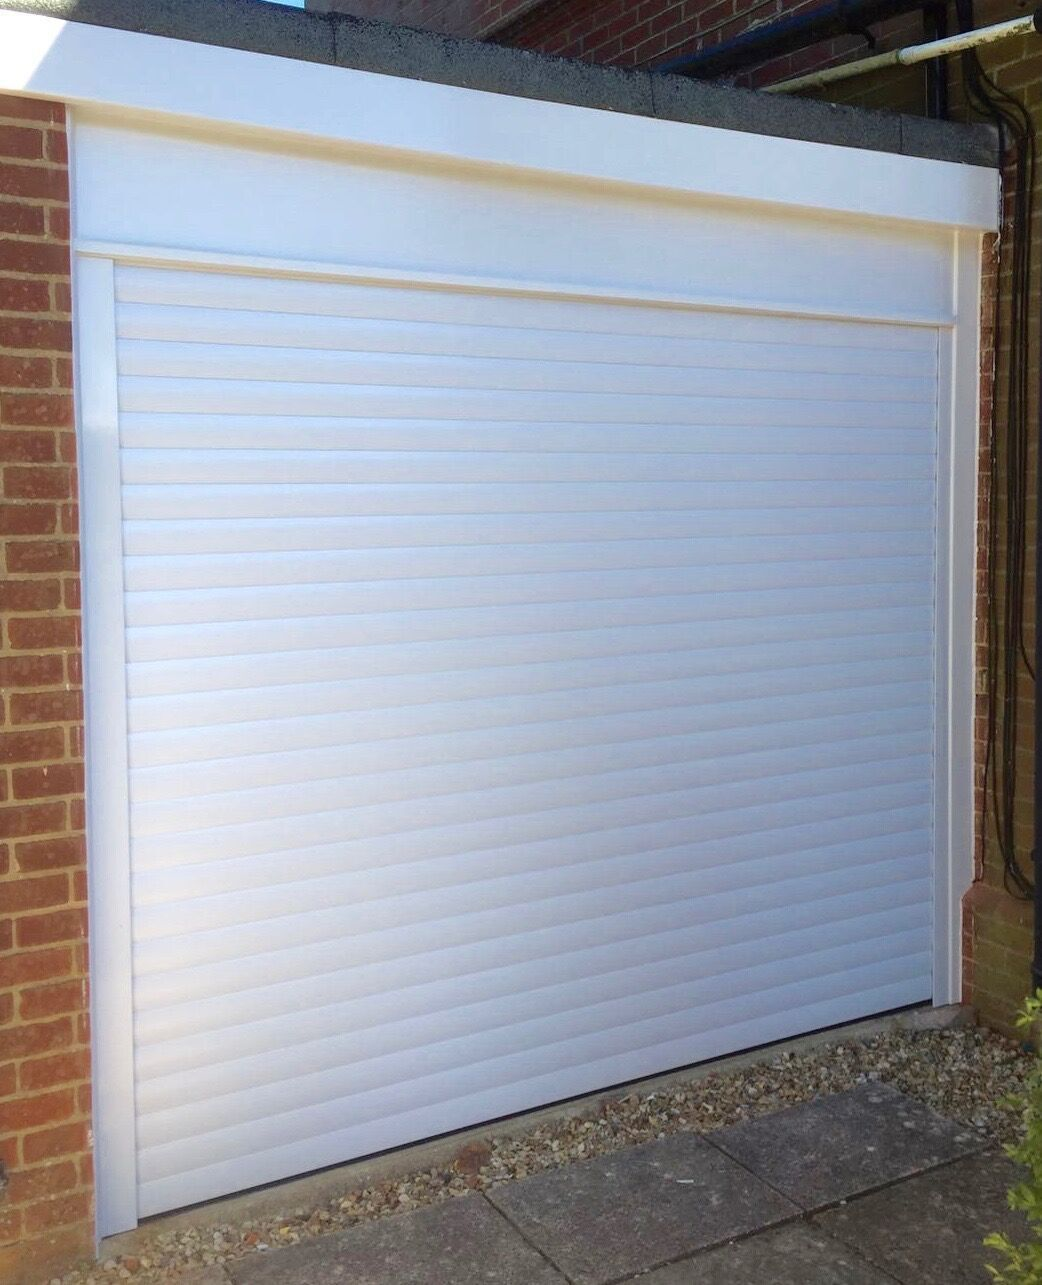 Roller Shutter Garage Door In White Doors Roller Shutters Garage Doors